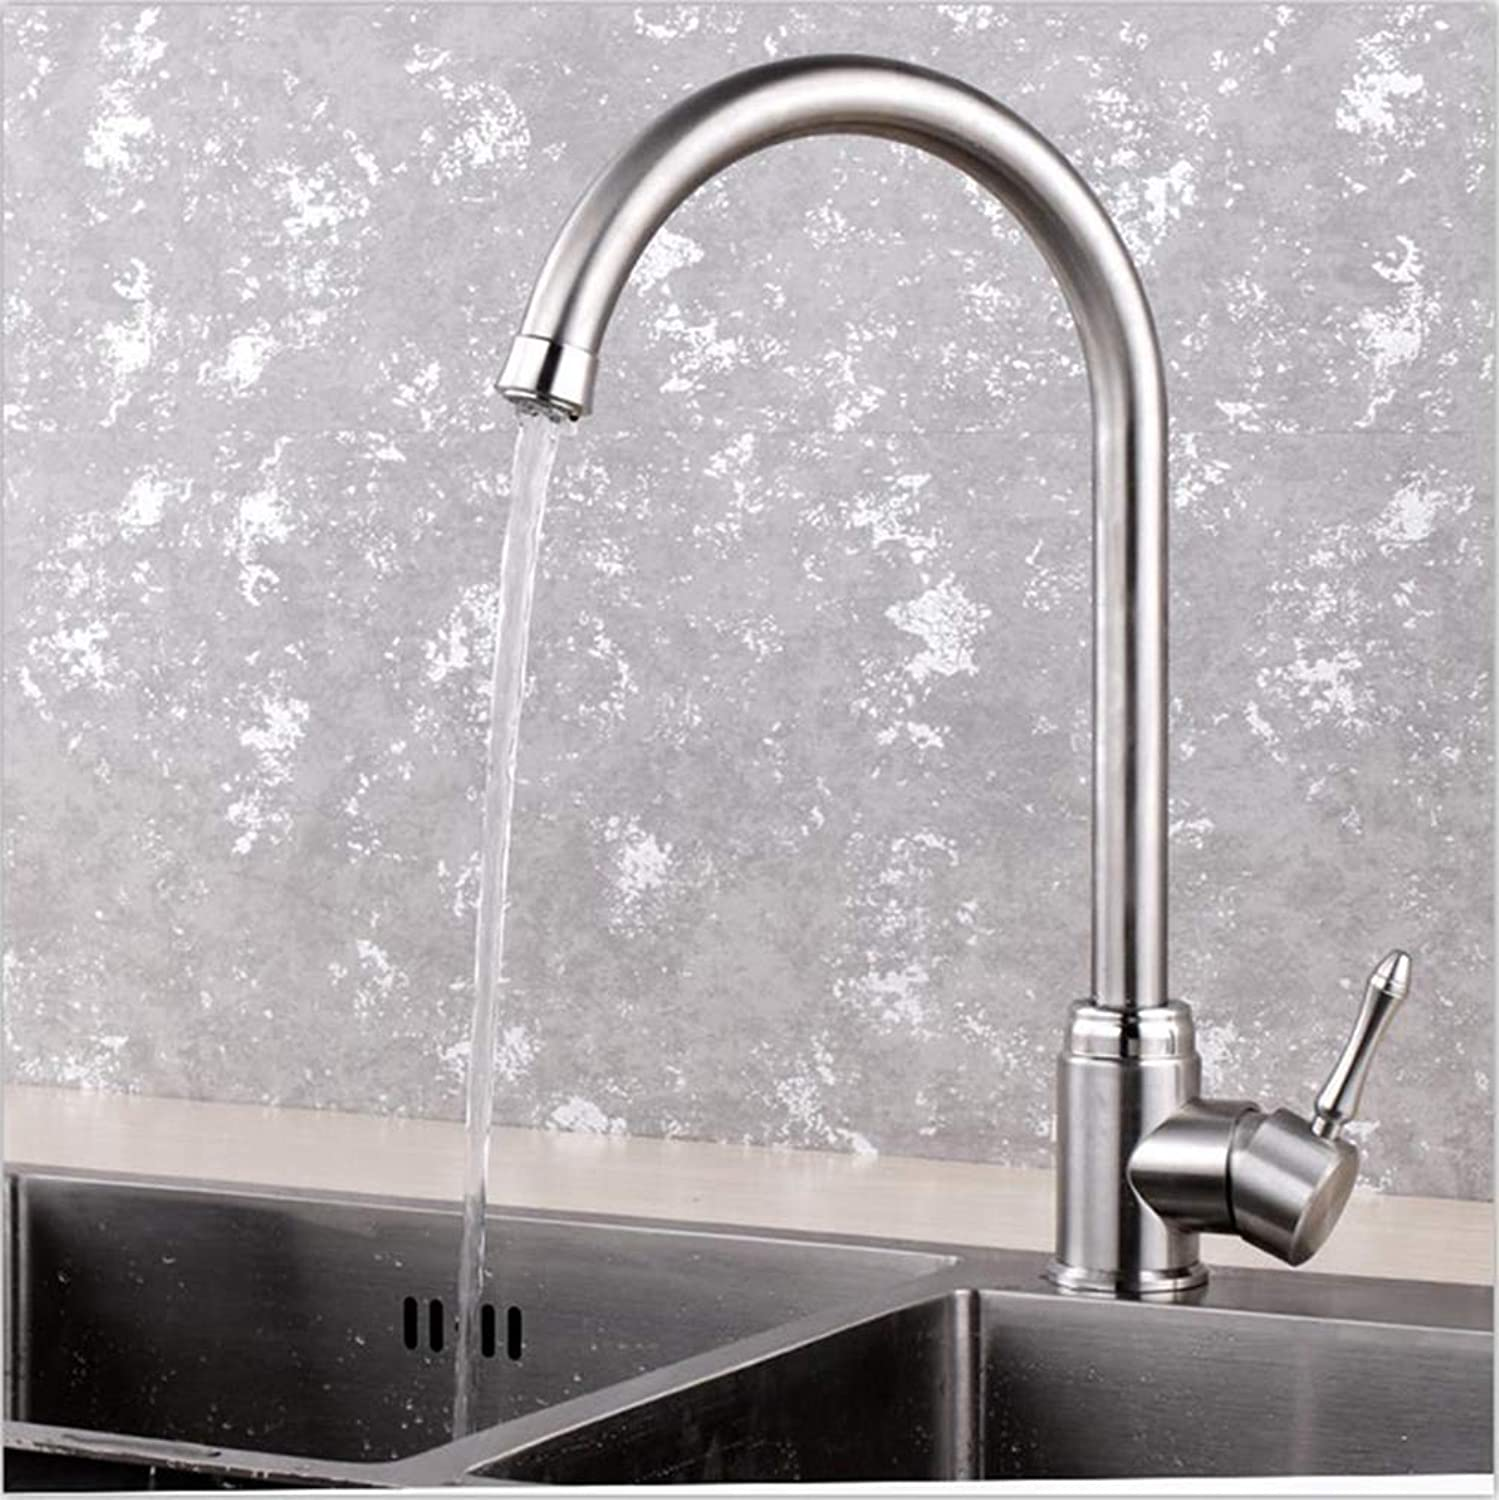 FZHLR Vintage European Design Kitchen Faucet Easy Maintain Brushed Surface 304 Stainless Steel Cold and Hot Deck Mounted Brushed,B